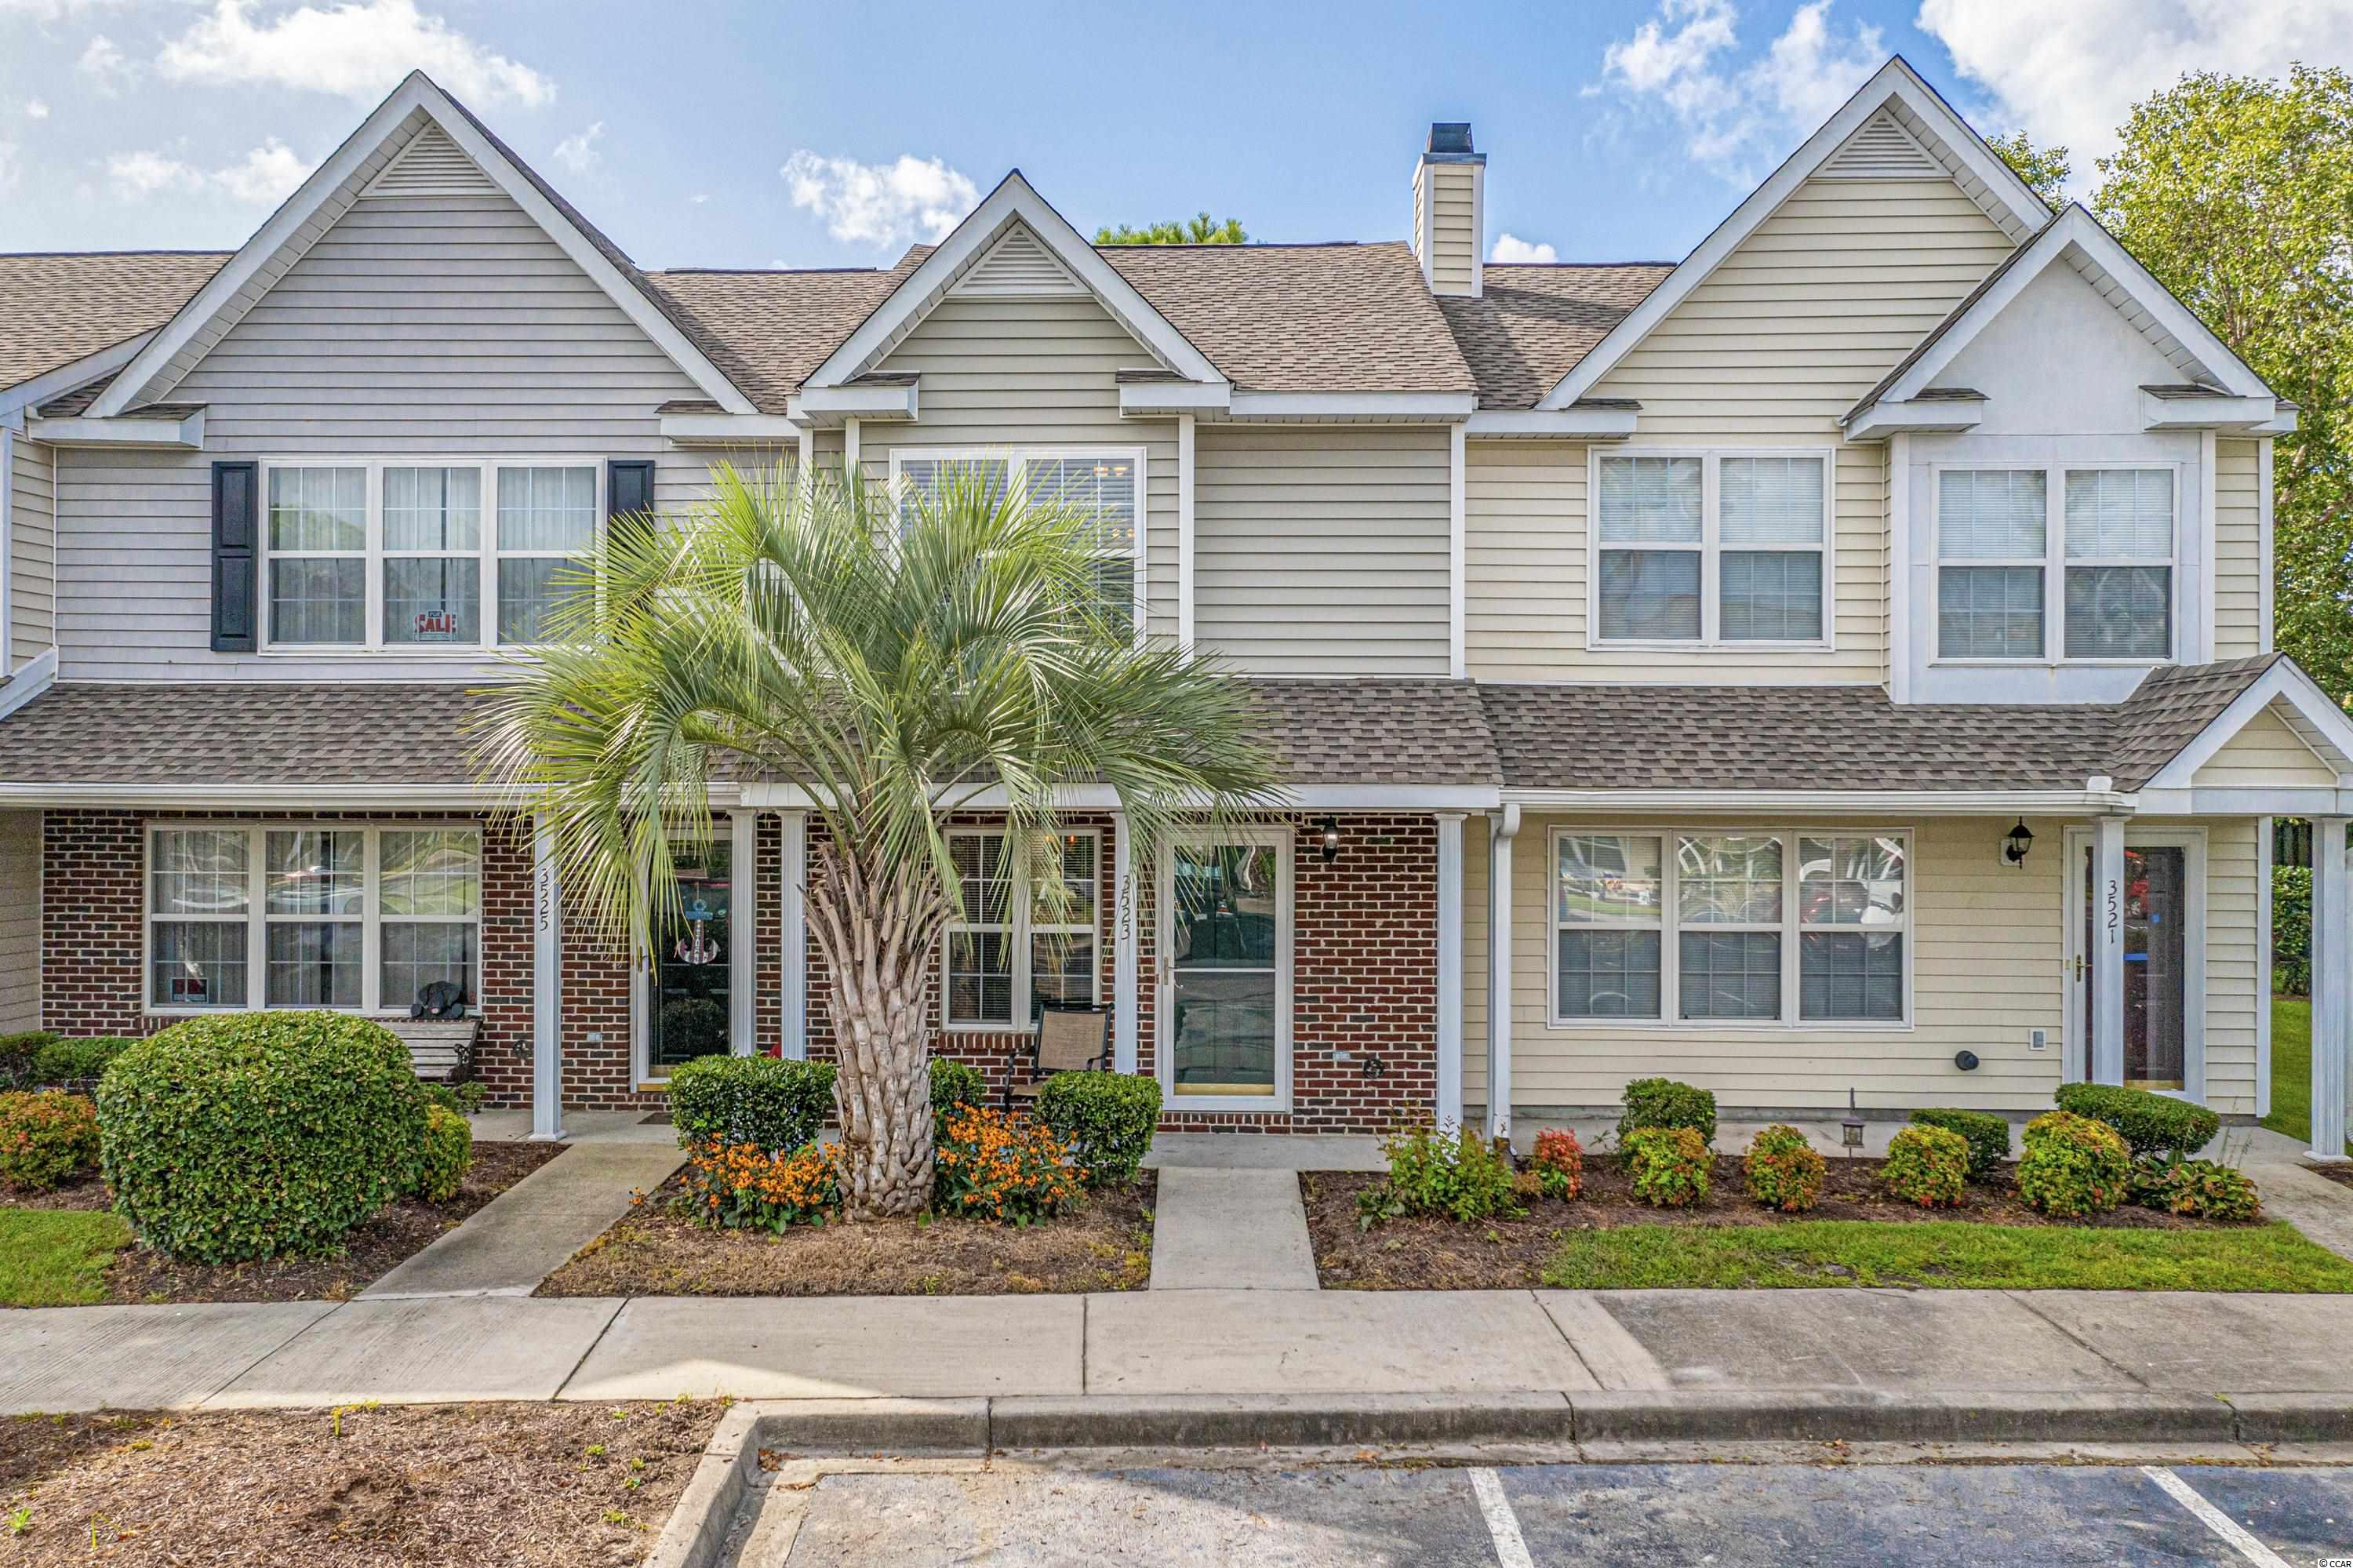 Come see this adorable Townhouse located in the quiet Windsor Gate community of Market Common! The property has 2 master bedrooms each with their own private bathroom upstairs, and a 1/2 bathroom on the main floor. The first floor has an Open Floor plan with vinyl plank flooring and all new Stainless Steel appliances in the kitchen. The HVAC unit was installed in 2018 and the hot water heater was installed in 2016. There is a cozy, private back patio with a semi fenced in grassy yard for BBQs and your favorite pets. The community has it's own pool and is within walking distance to many Restaurants, Theaters, Entertainment, Festivals, Parks, Dog Parks and everything else that Market Common has to offer! Windsor Gate is also a Golf cart distance to the Beautiful Beach & Myrtle Beach State Park! Call today to schedule your appointment to see this beautiful townhome and to find YOUR perfect place at the Beach!